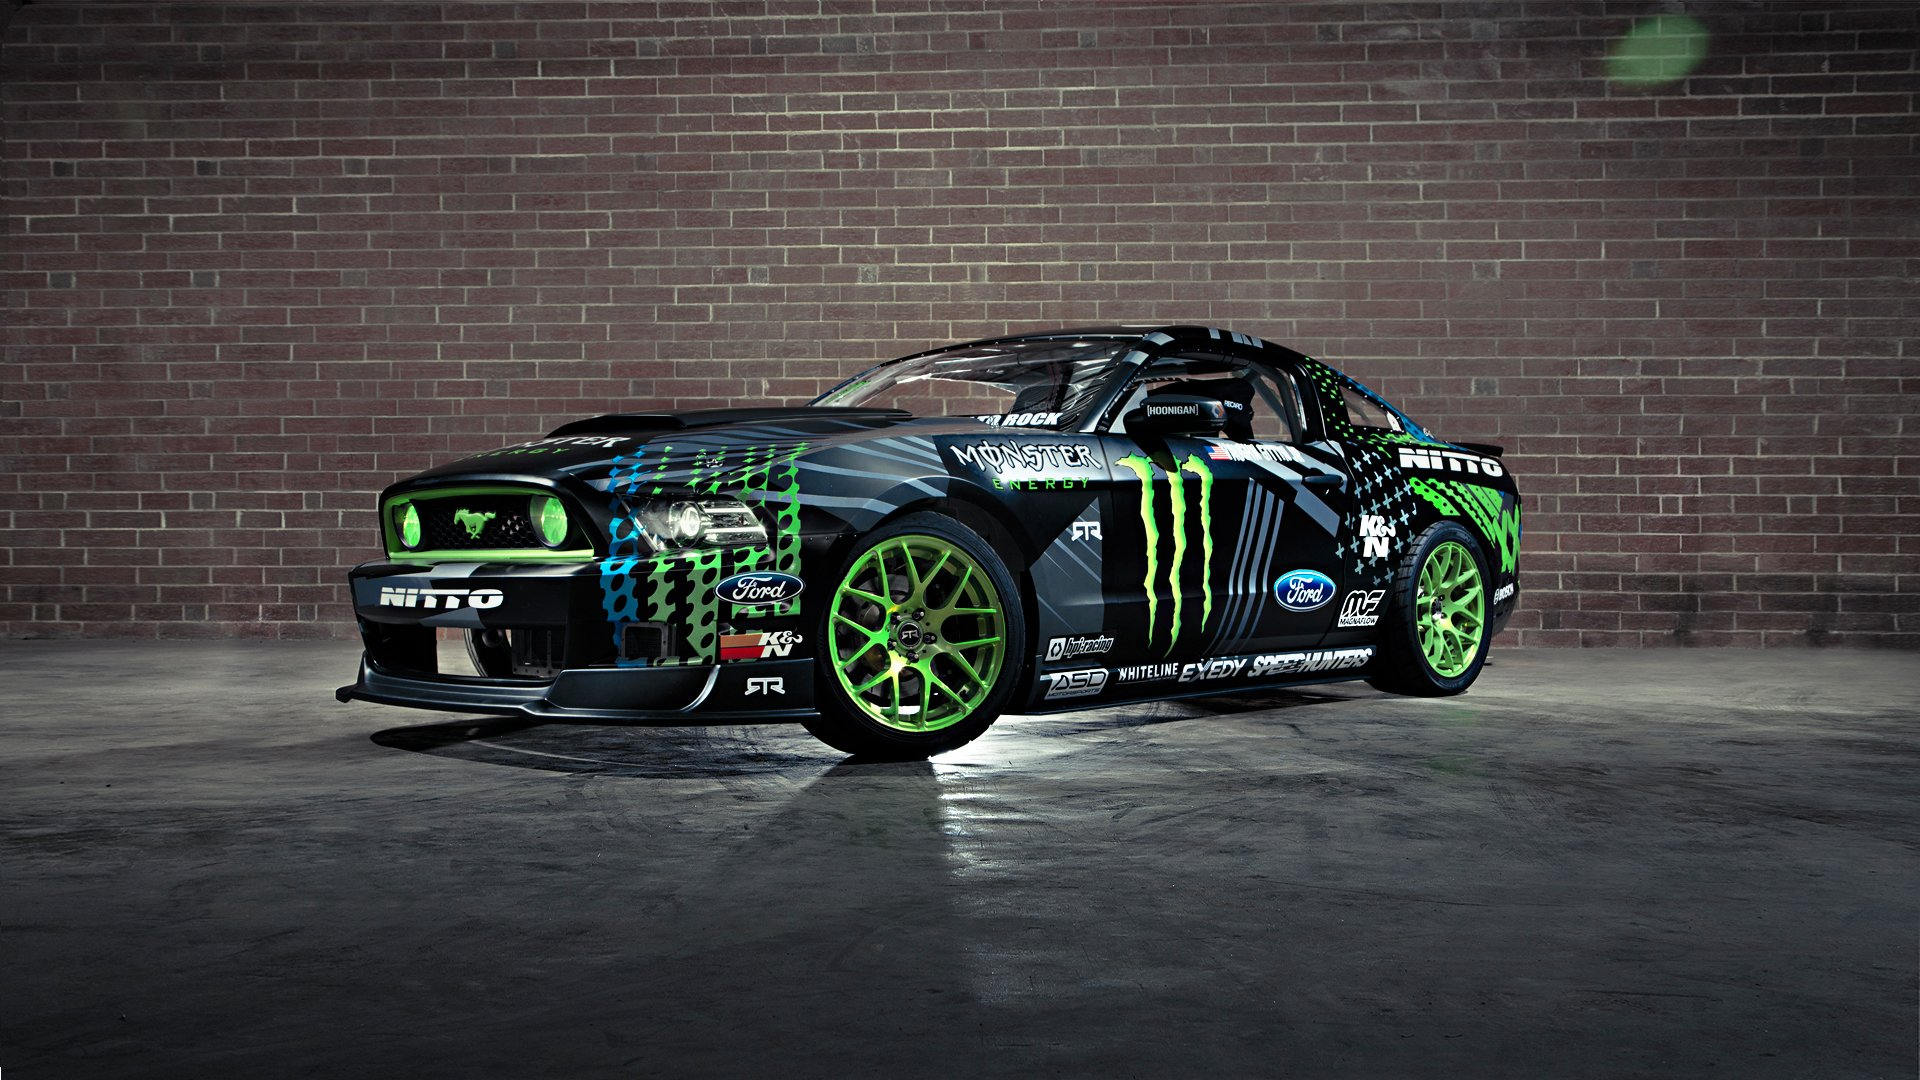 Monster Energy Wallpaper for iPhone - WallpaperSafari